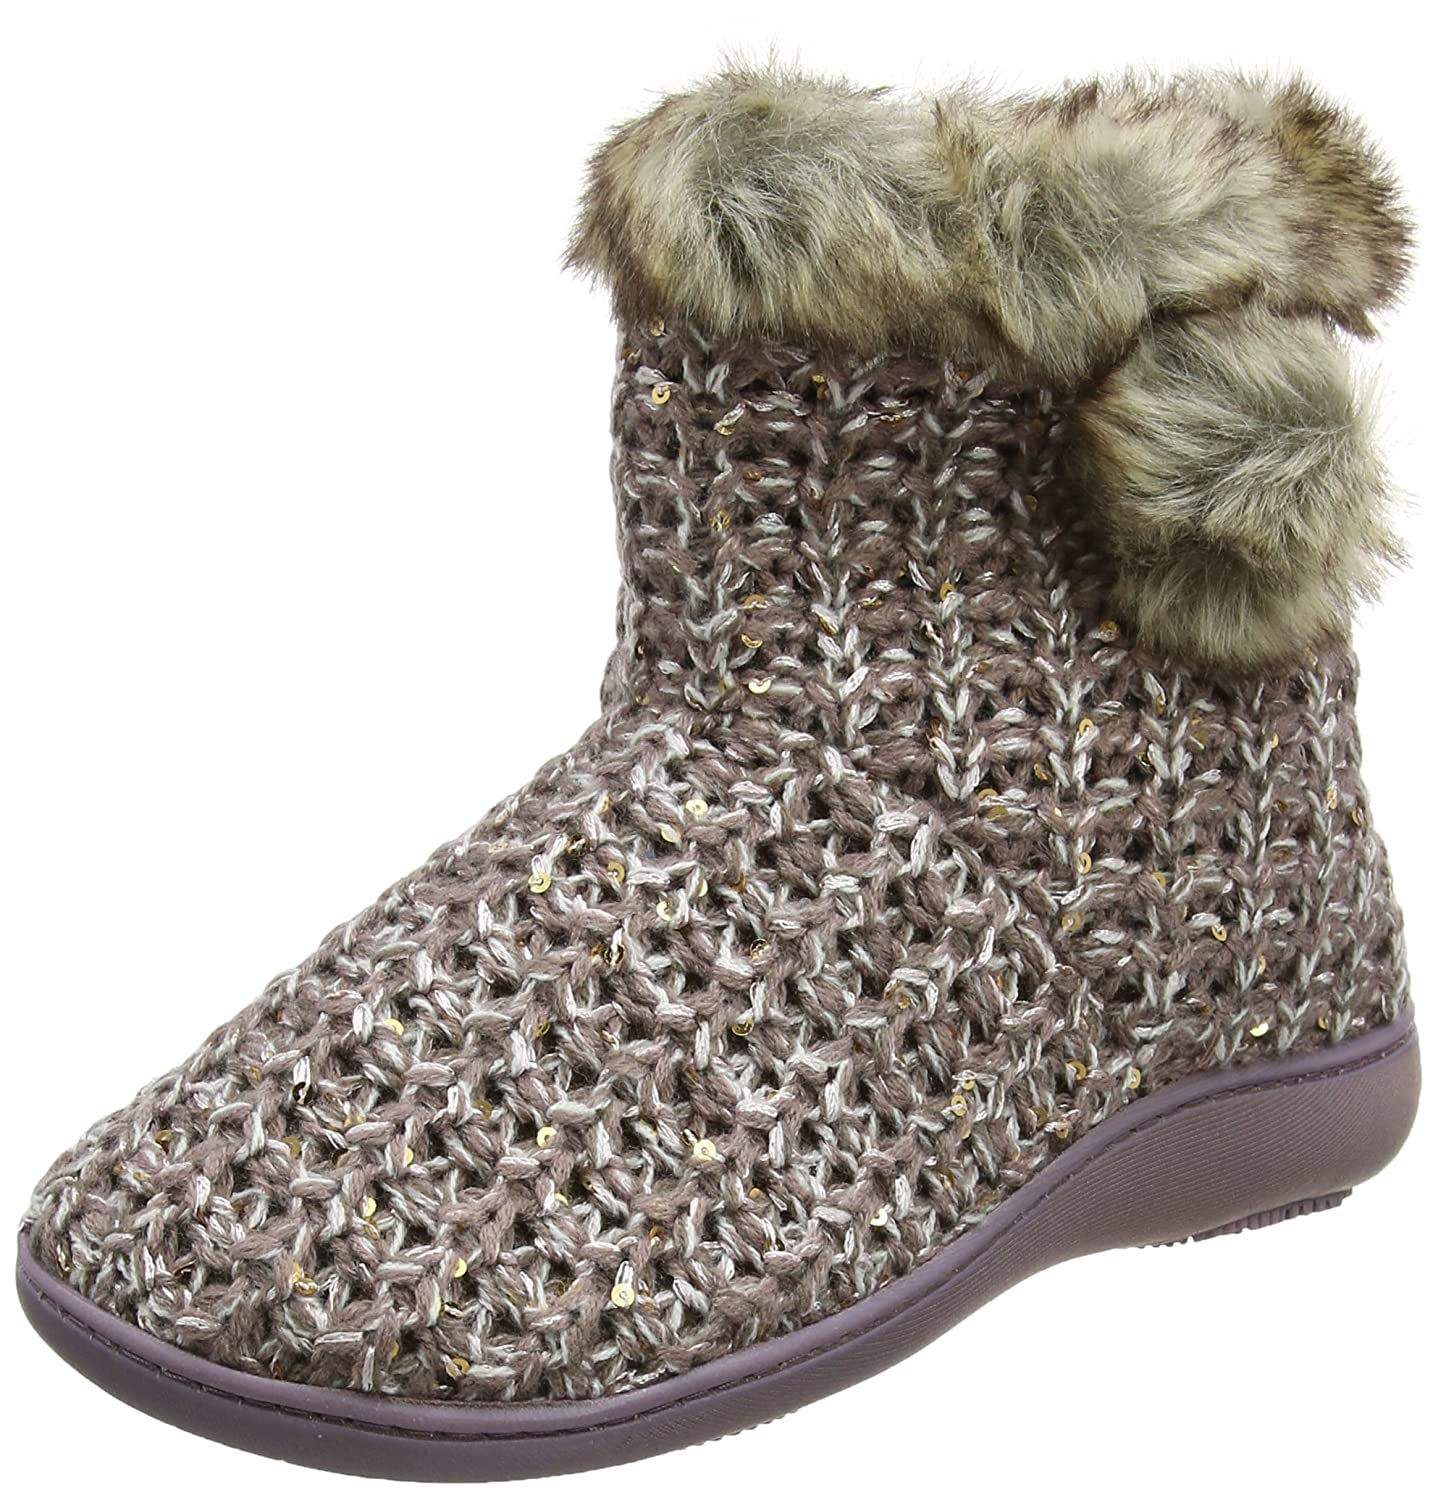 Isotoner B00C5NGSK6 Sparkle Knit Boot Chaussons Slippers, Boot Chaussons Montants Femme Rose (Pink) 161a794 - conorscully.space